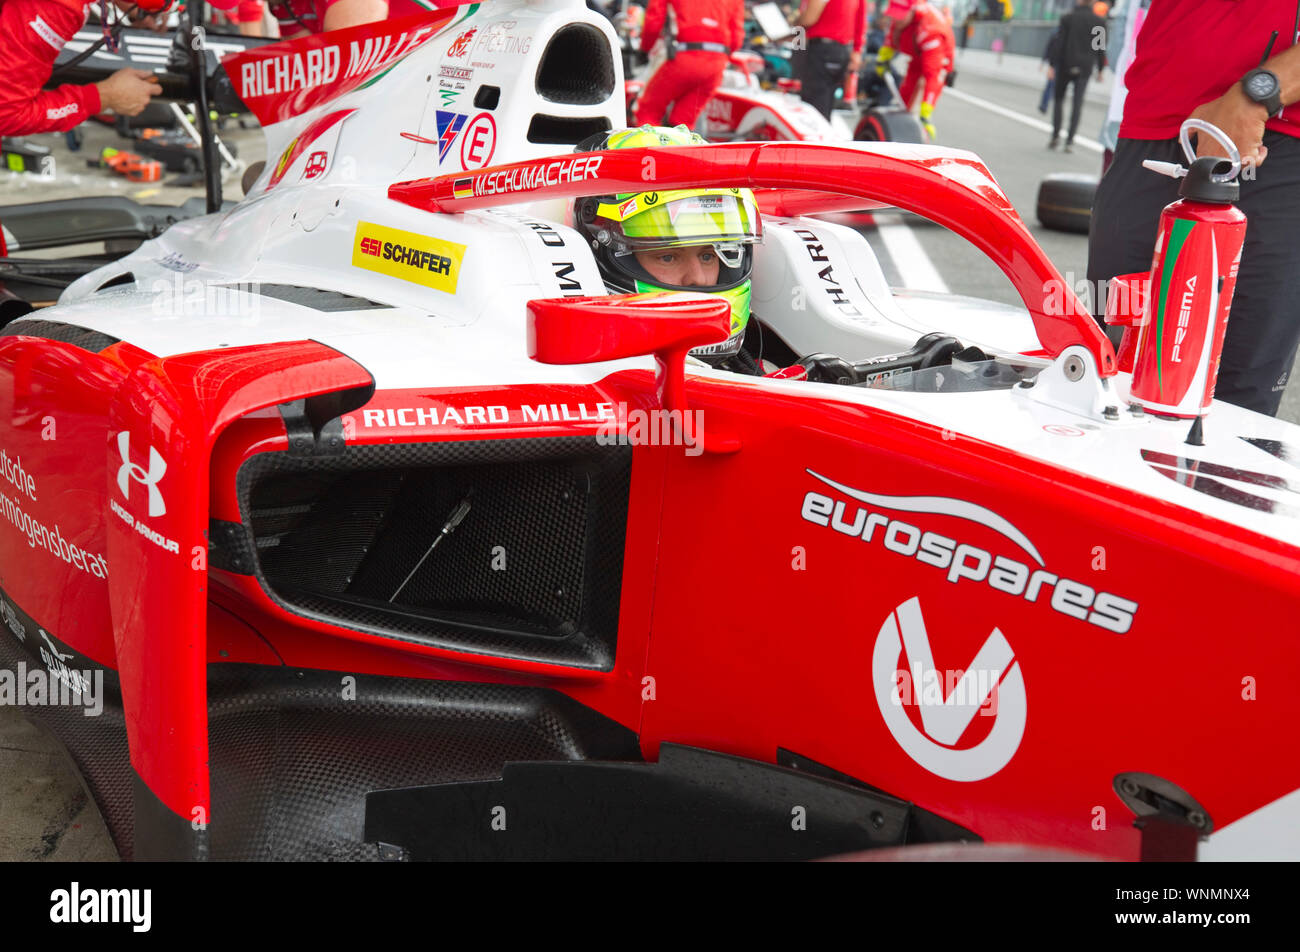 Monza Italy 06th Sep 2019 Monza Italy September 06 2019 Fia Formula 2 Grand Prix Of Italy With Mick Schumacher Prema Powerteam F2 Credit Mandoga Media Alamy Live News Stock Photo Alamy